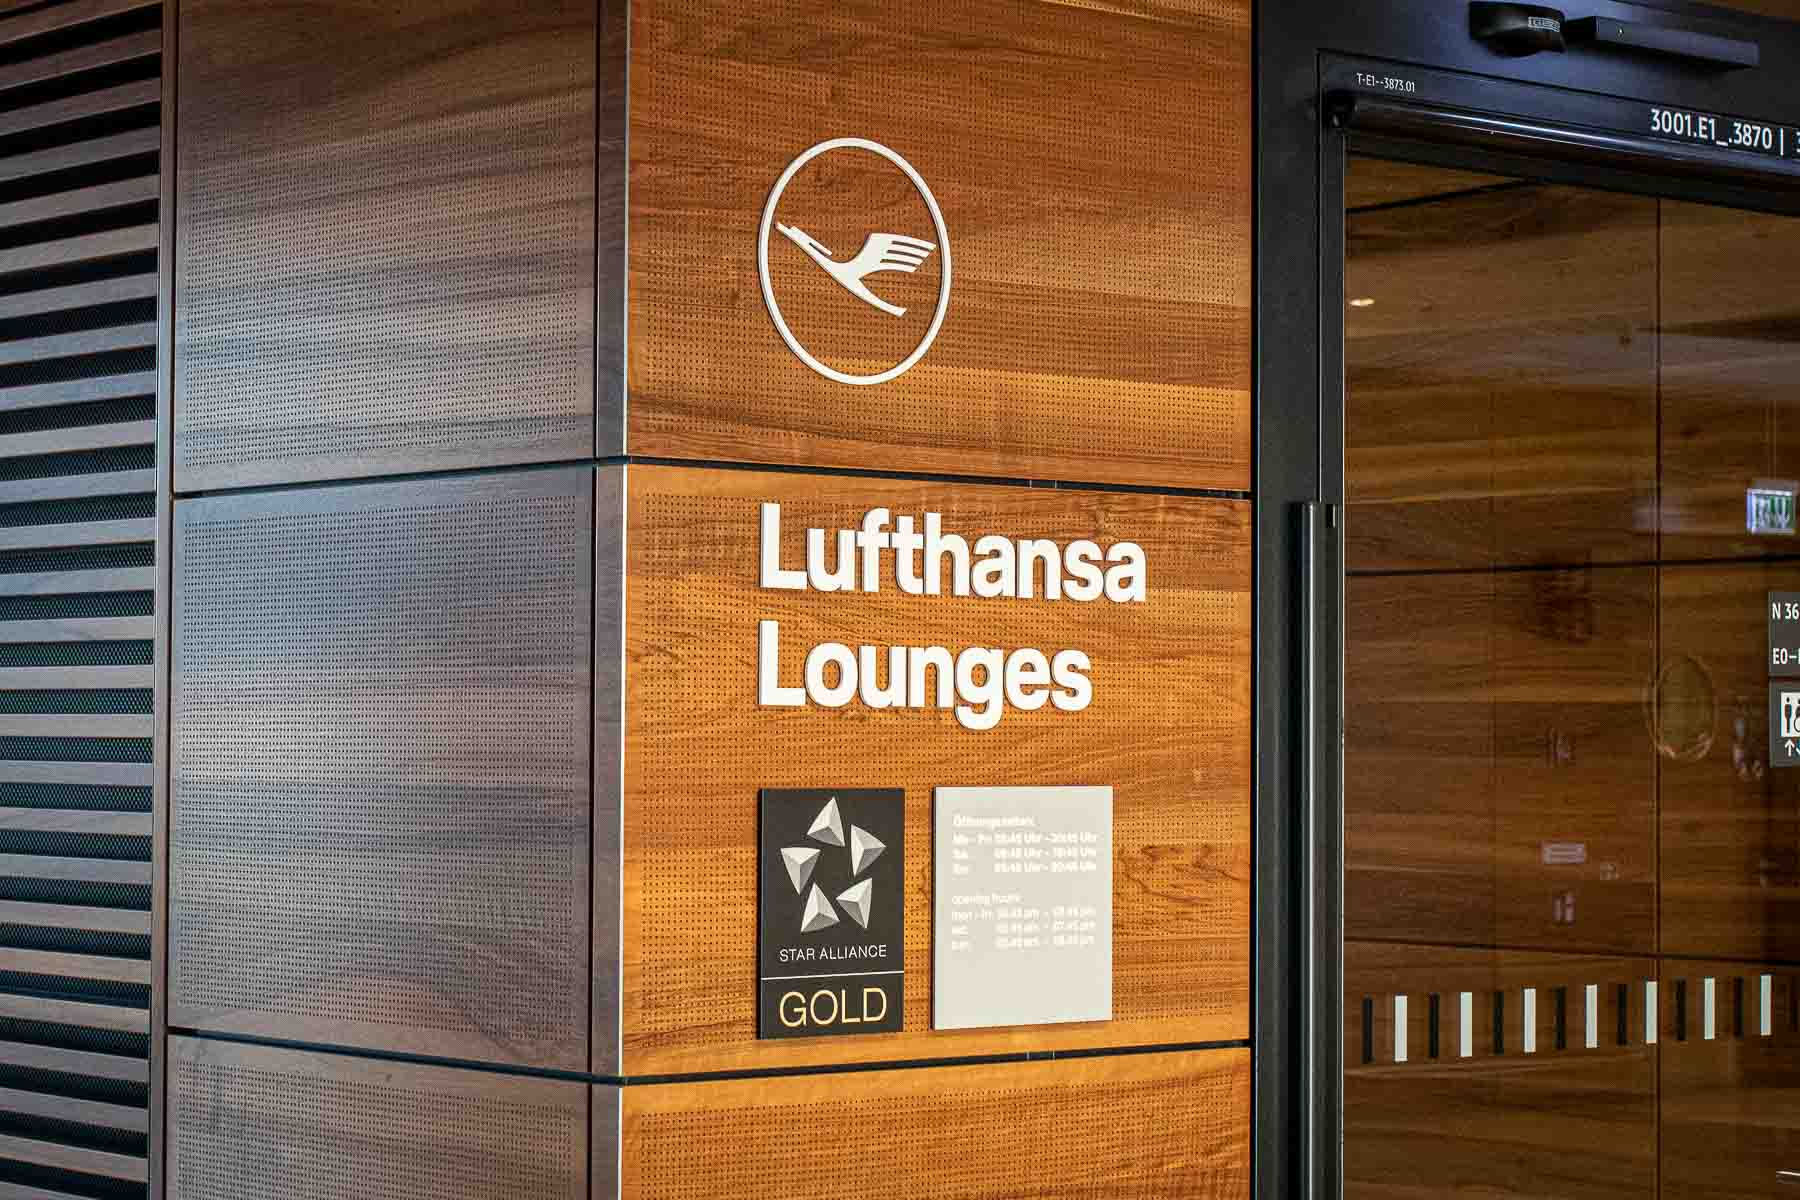 Lufthansa Lounge BER Business Senator Lounge Flughafen Berlin The Travel Happiness